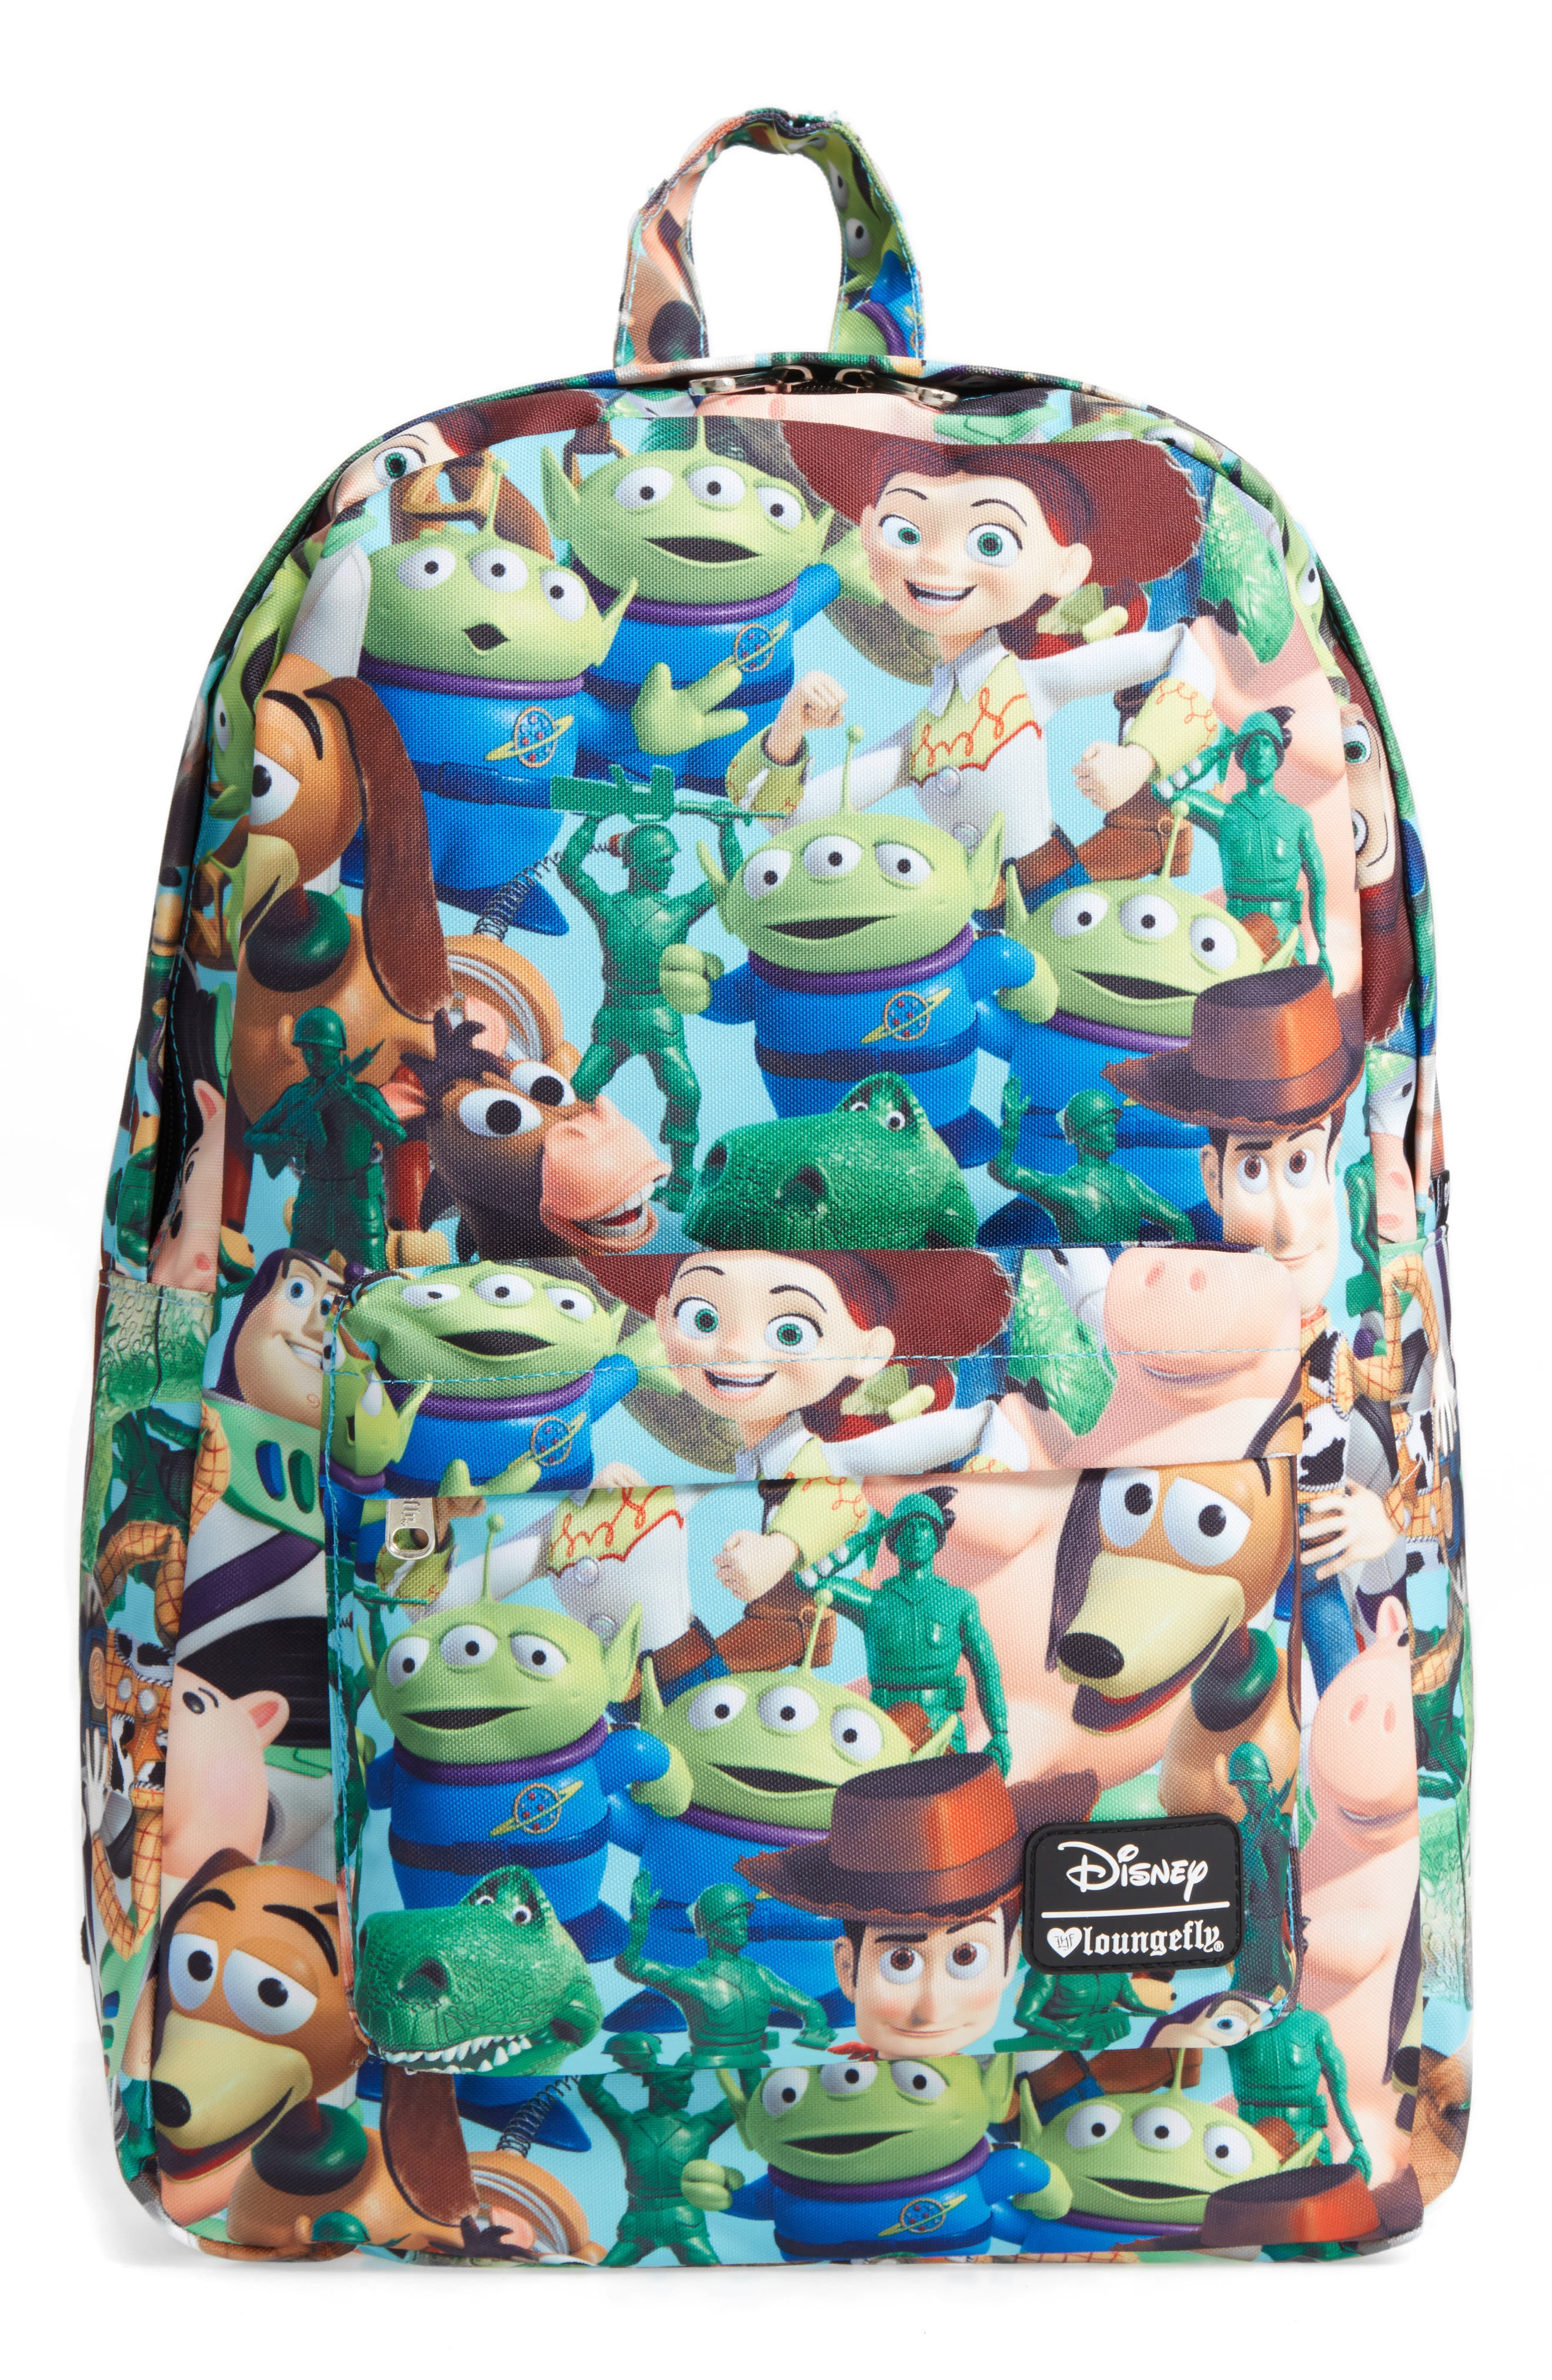 Disney<sup>®</sup> Toy Story Backpack,                         Main,                         color, 460